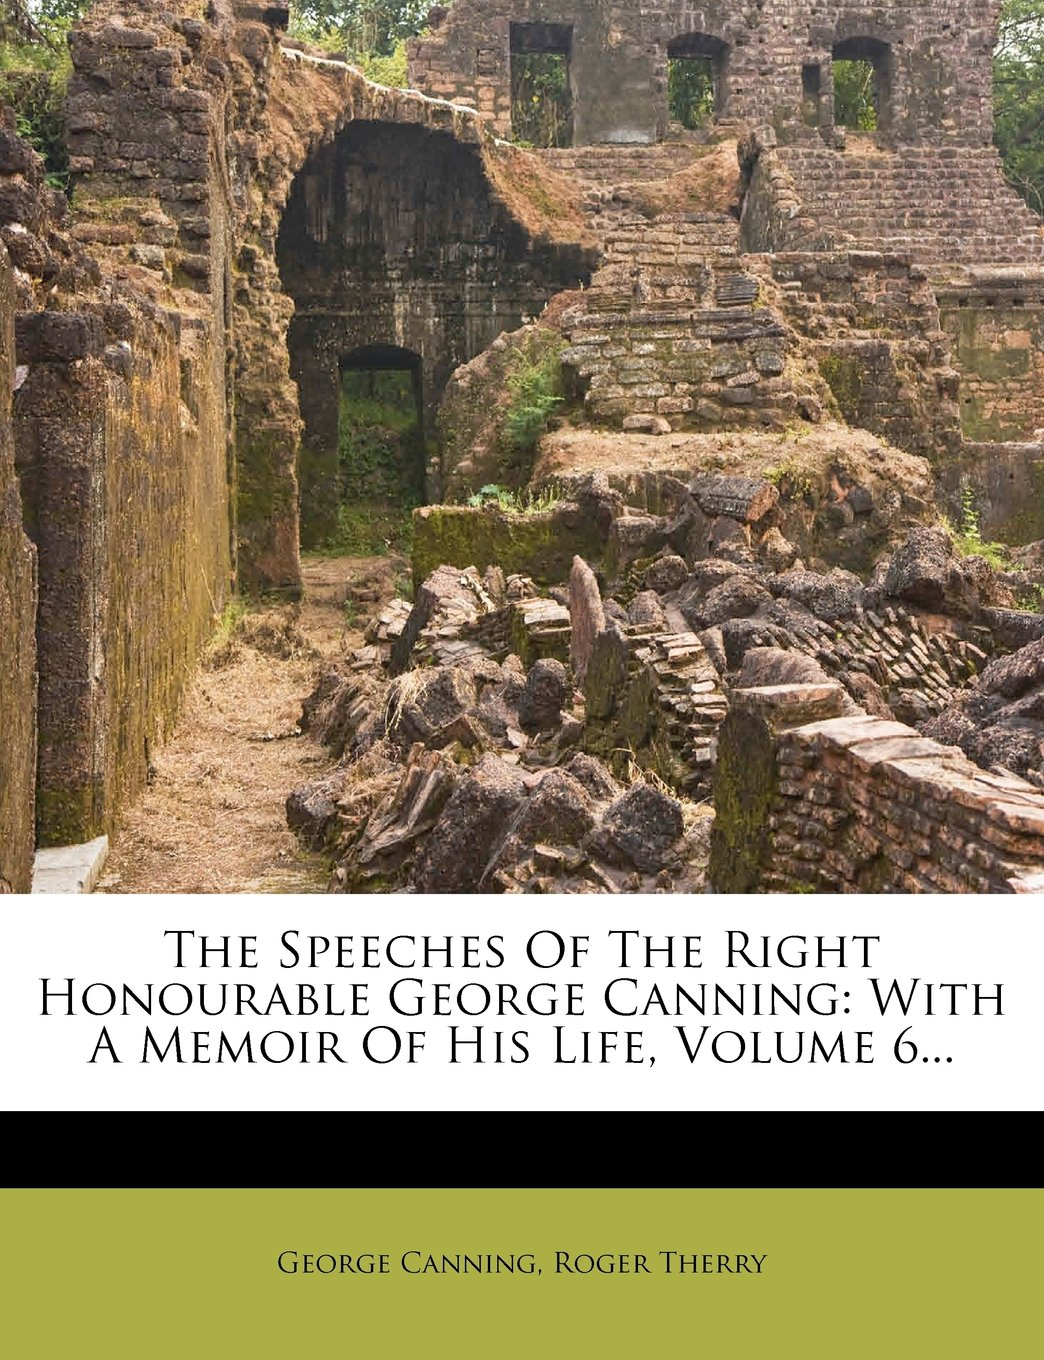 The Speeches Of The Right Honourable George Canning: With A Memoir Of His Life, Volume 6... pdf